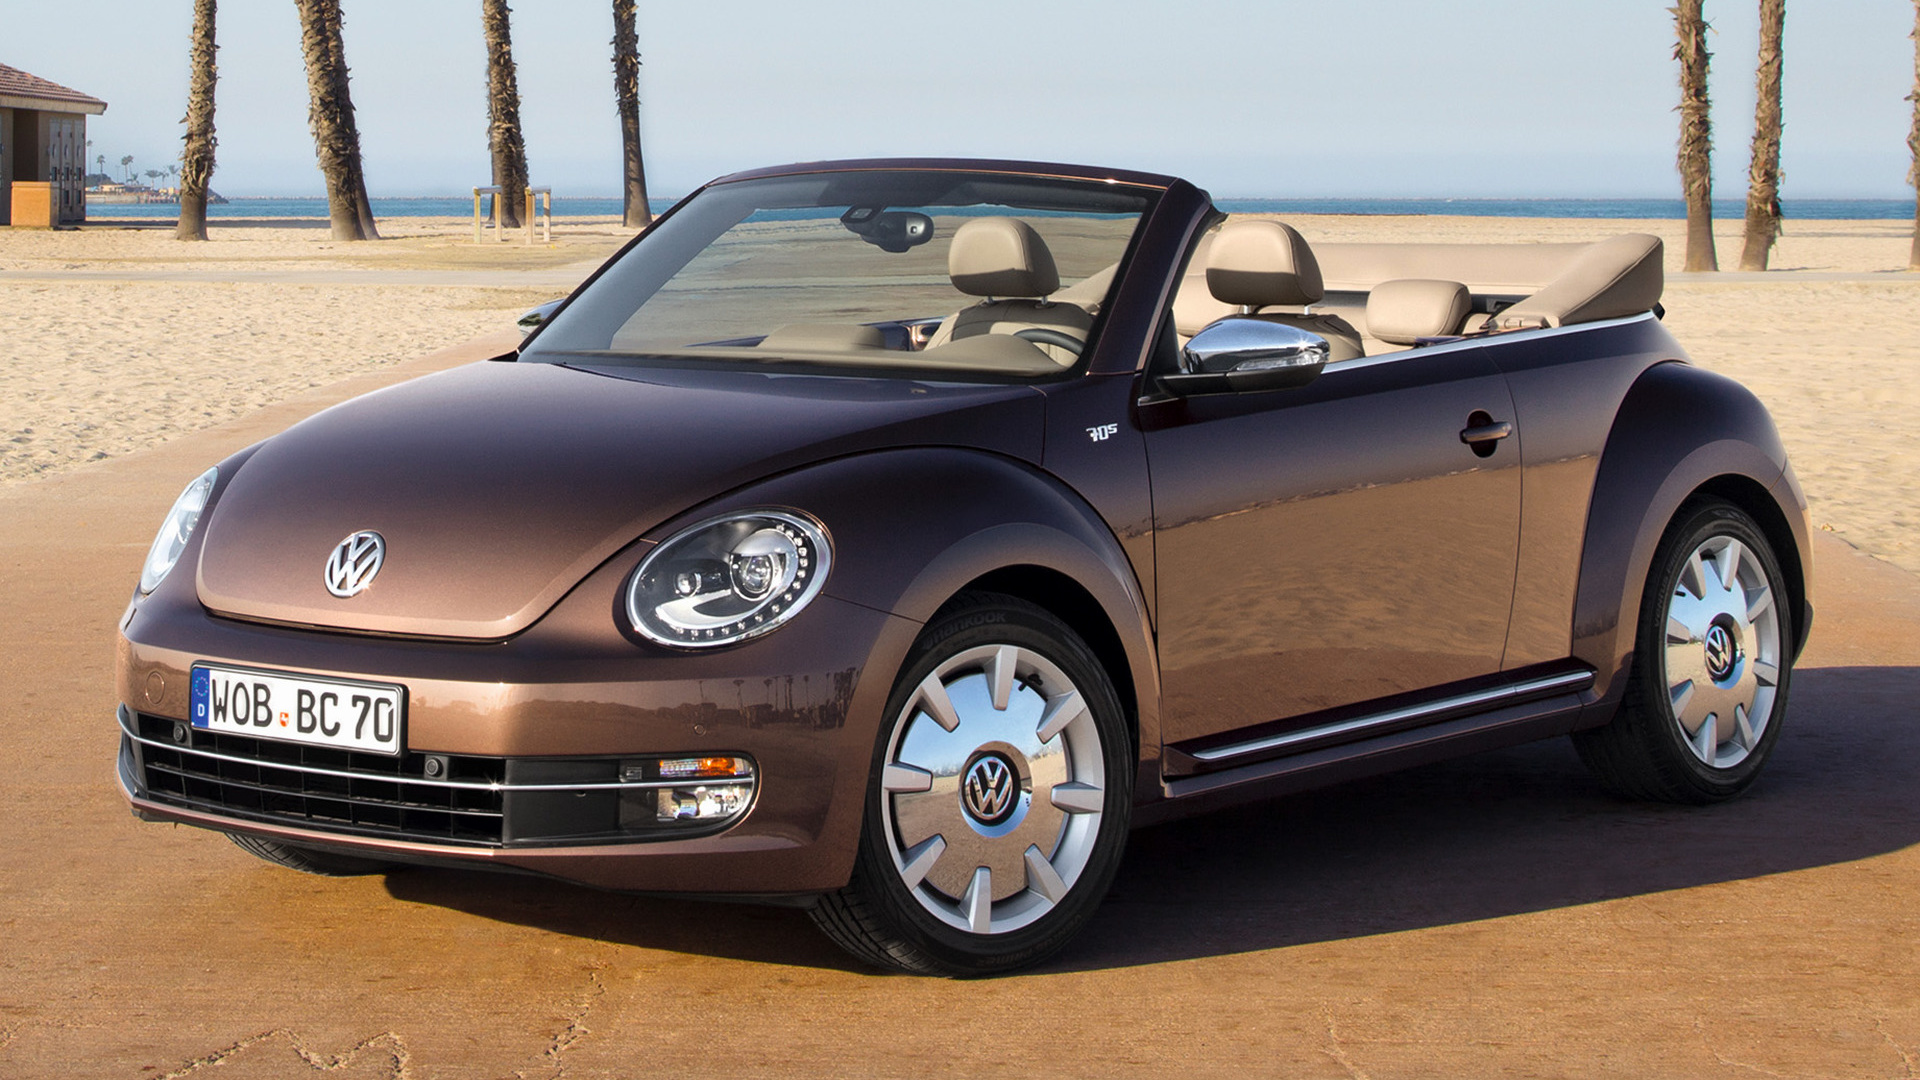 Volkswagen Beetle Cabriolet 70s Edition (2012) Wallpapers and HD Images - Car Pixel